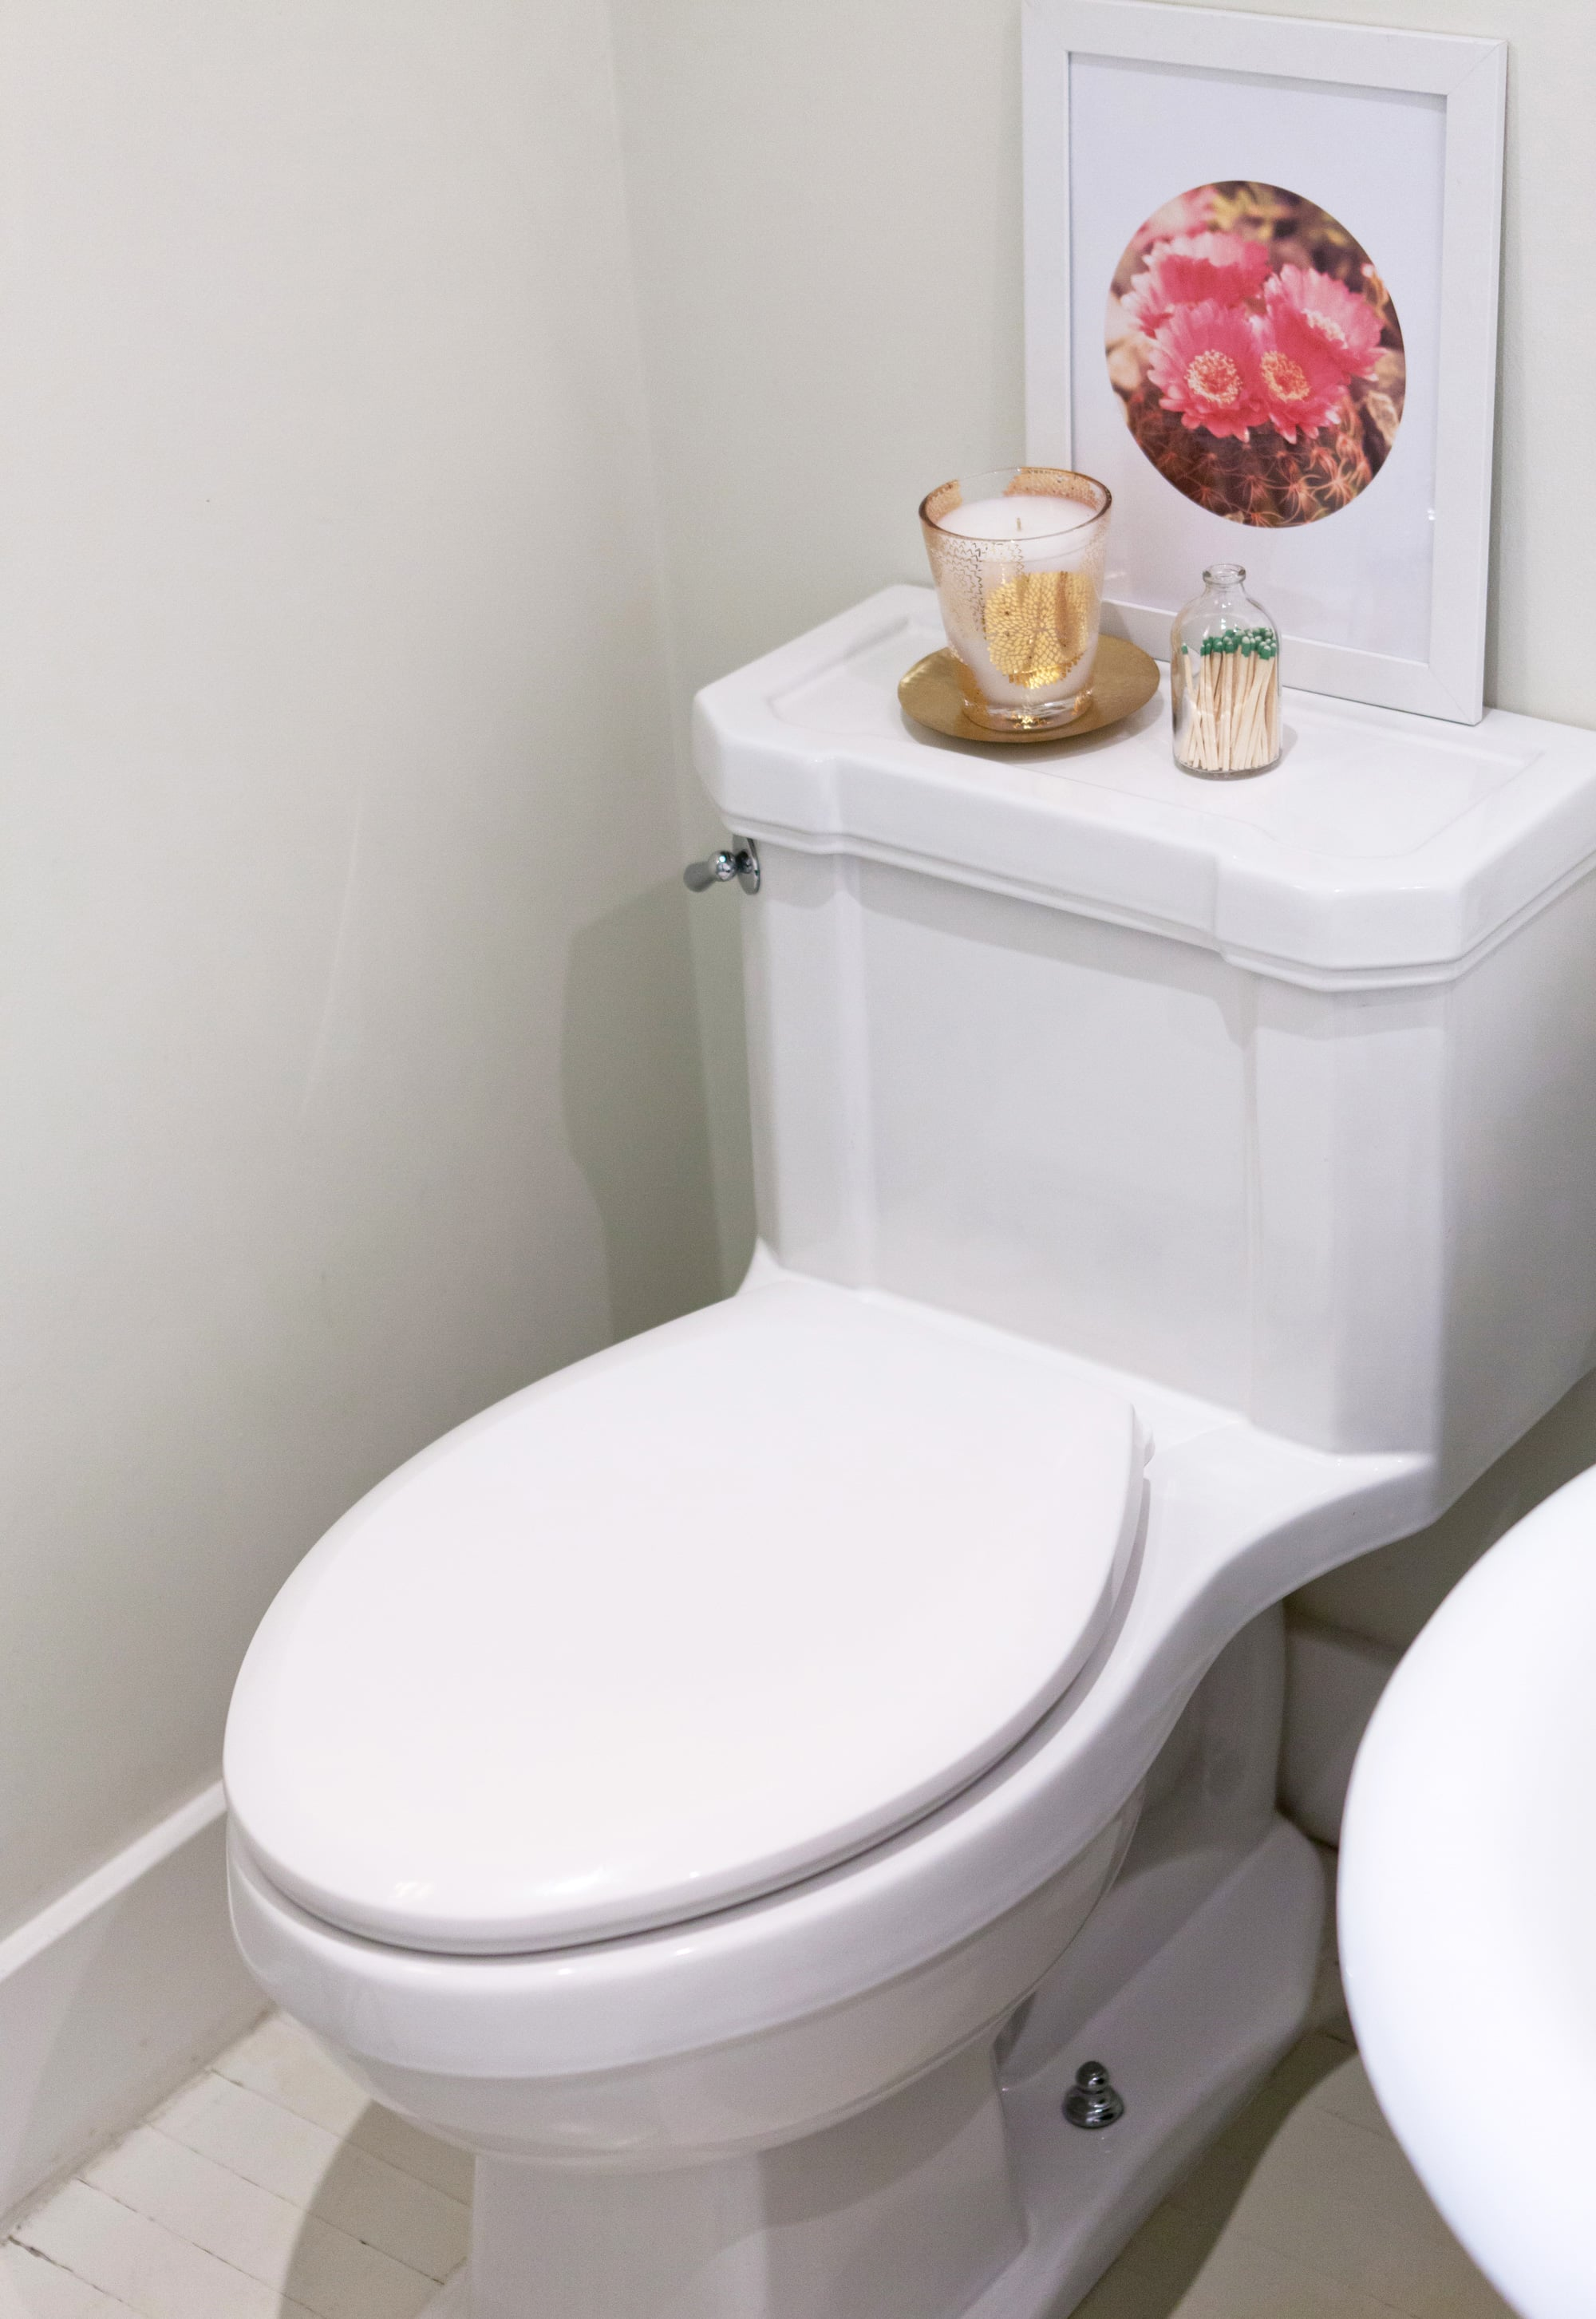 Pooping Stool Review Popsugar Fitness